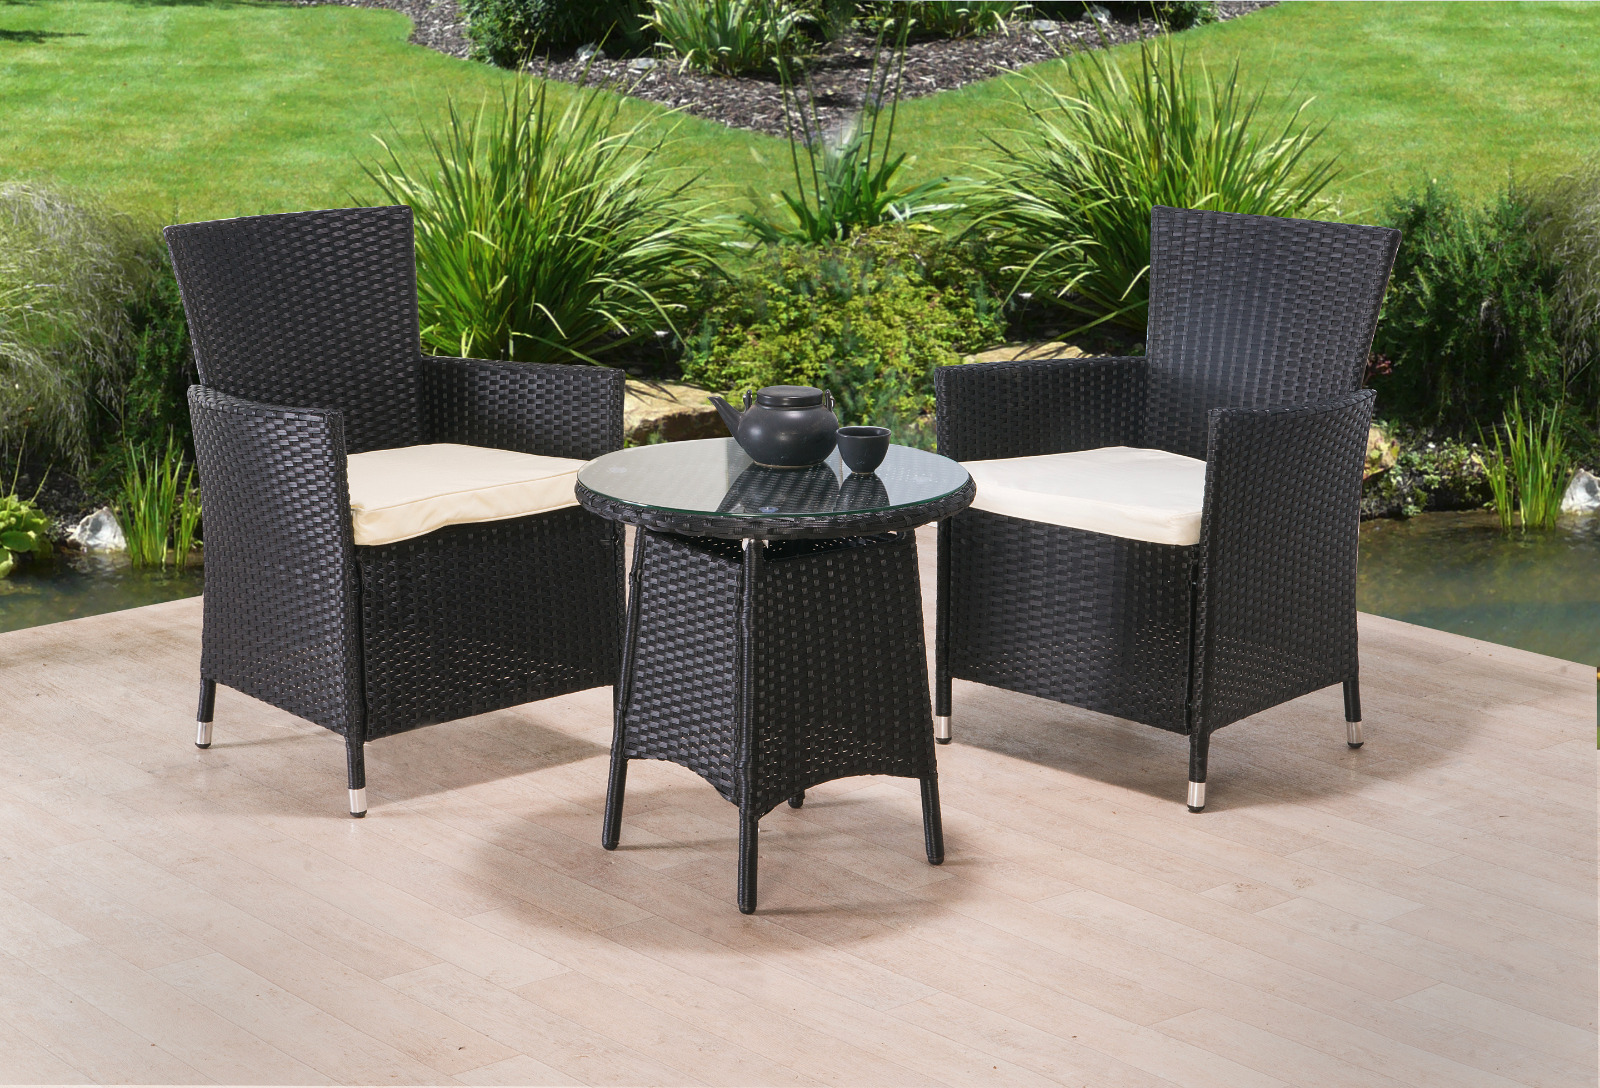 Sears Canada Outdoor Dining Sets Patios Home Walmart  : Rattan Garden Furniture 3Pc Patio Set Dining Set from 50han.com size 1600 x 1088 jpeg 655kB